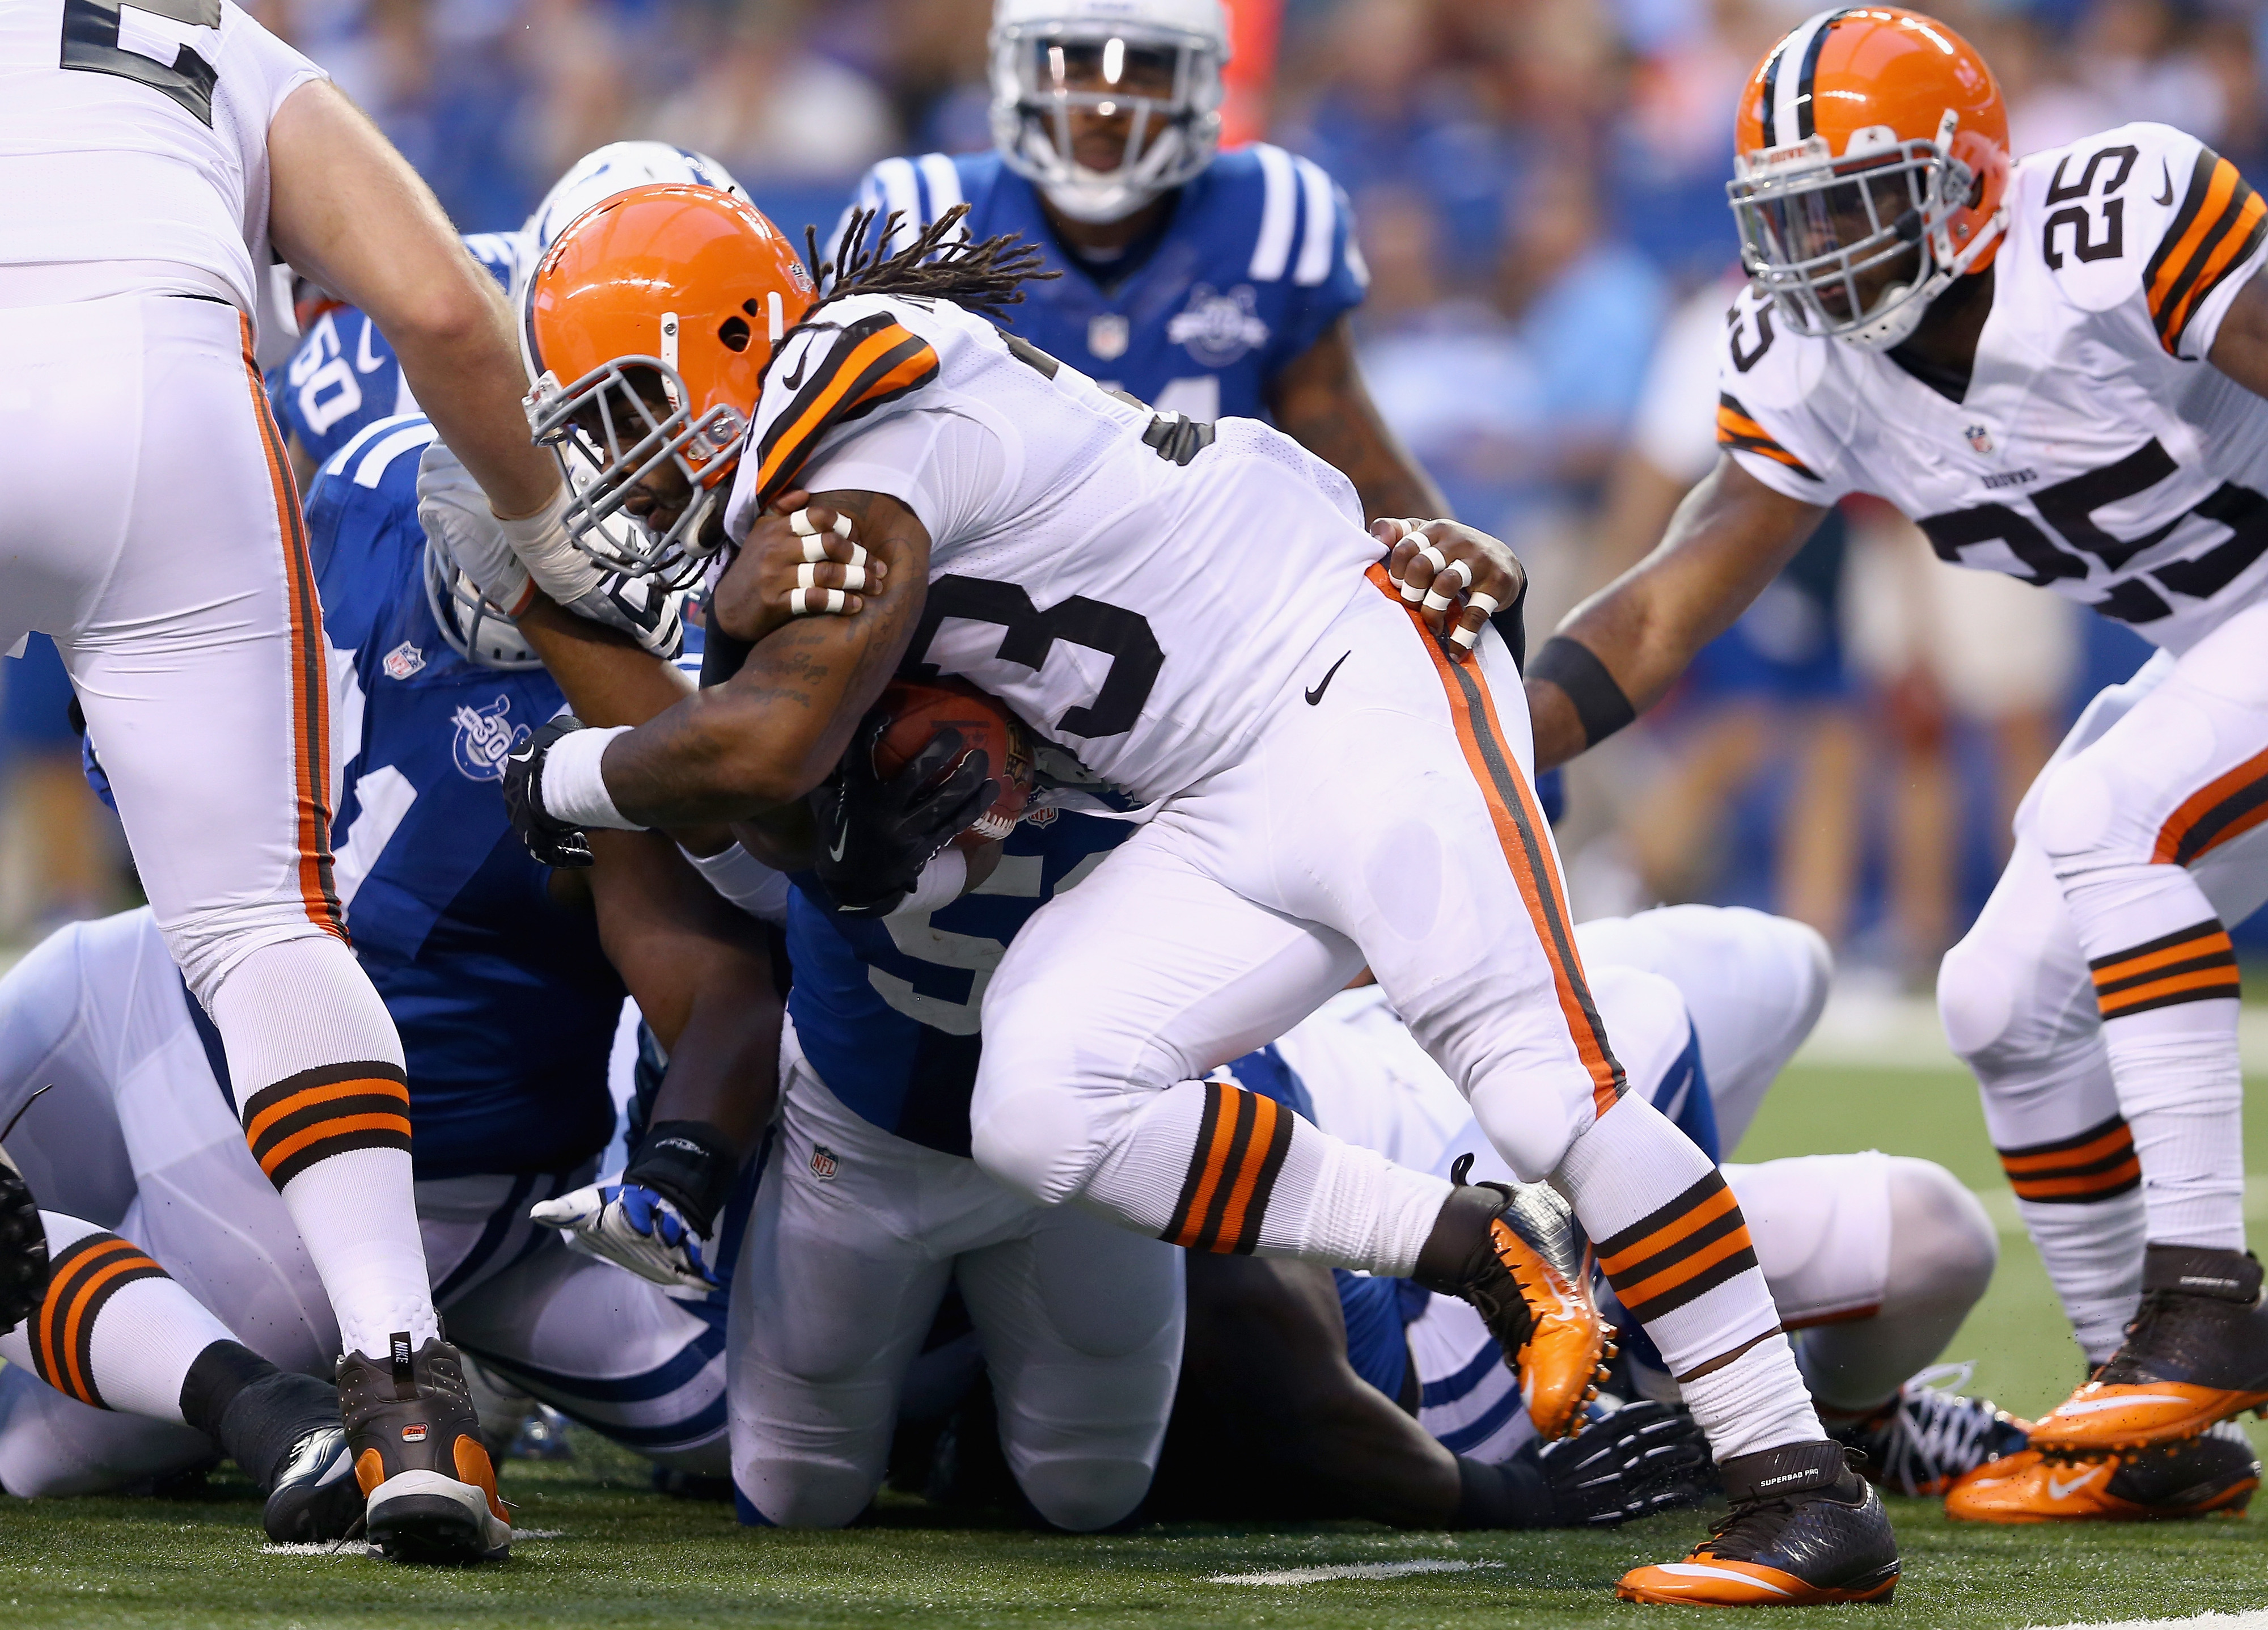 Trent Richardson makes his debut for the Colts in San Francisco today.